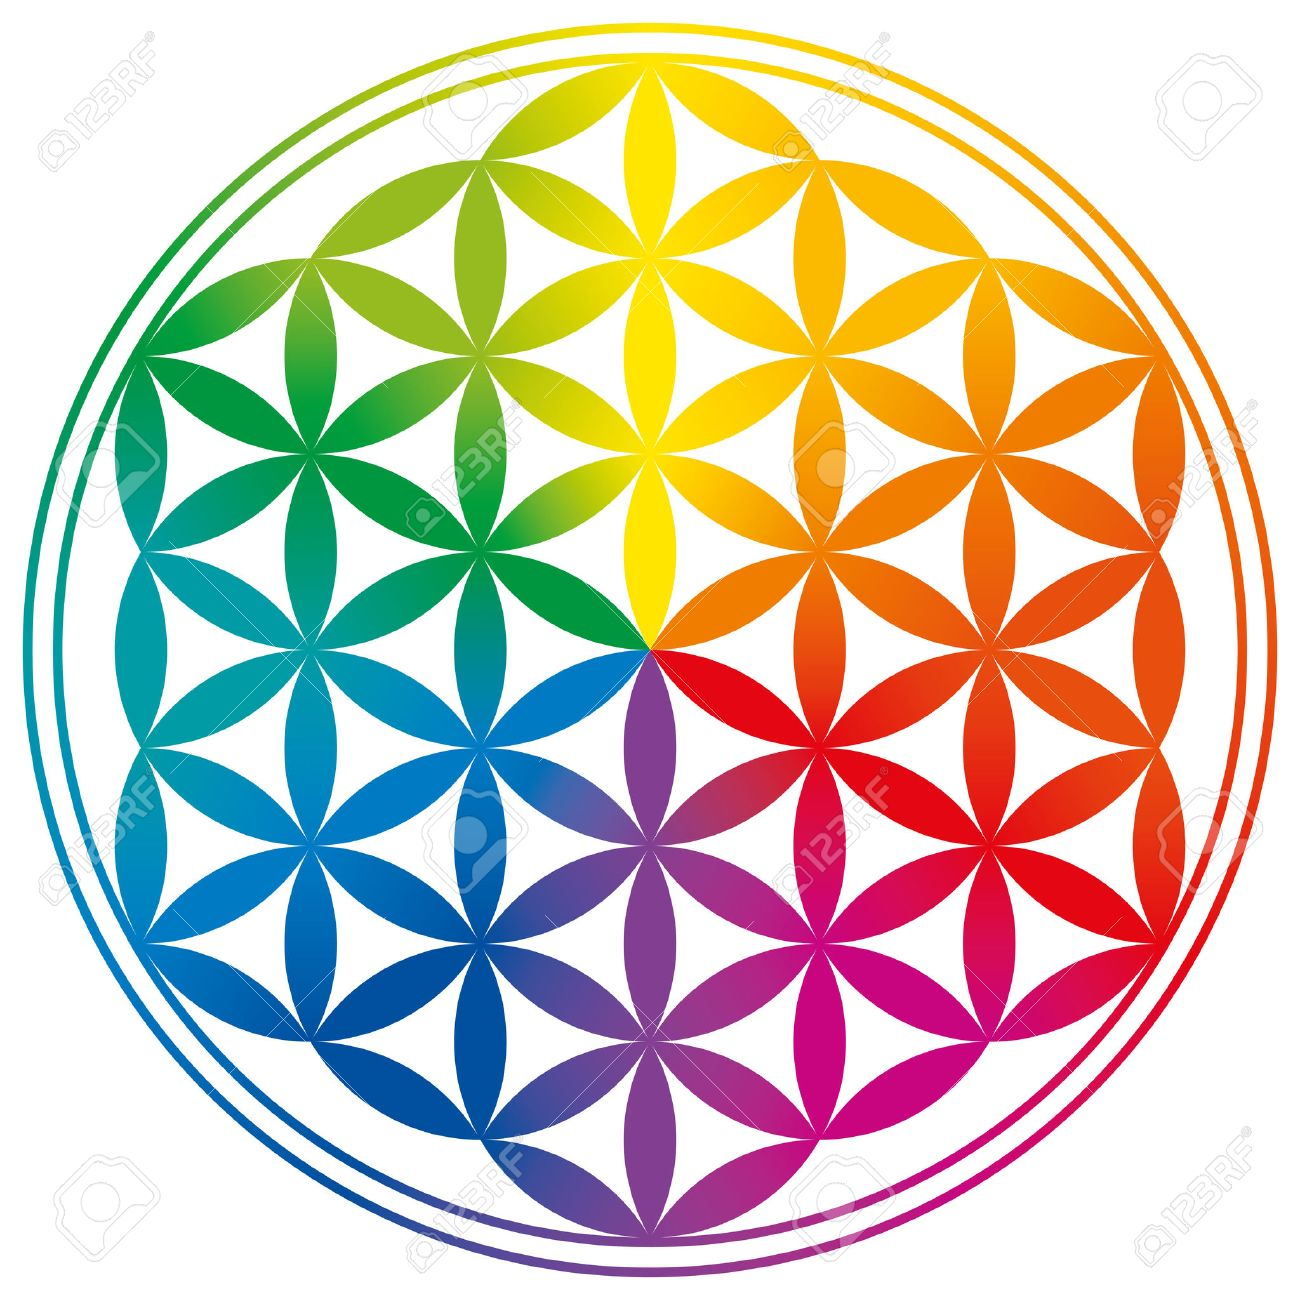 Flower of Life with rainbow color gradients. Circles are forming a flower-like pattern. A spiritual symbol since ancient times and Sacred Geometry. Banque d'images - 34617008